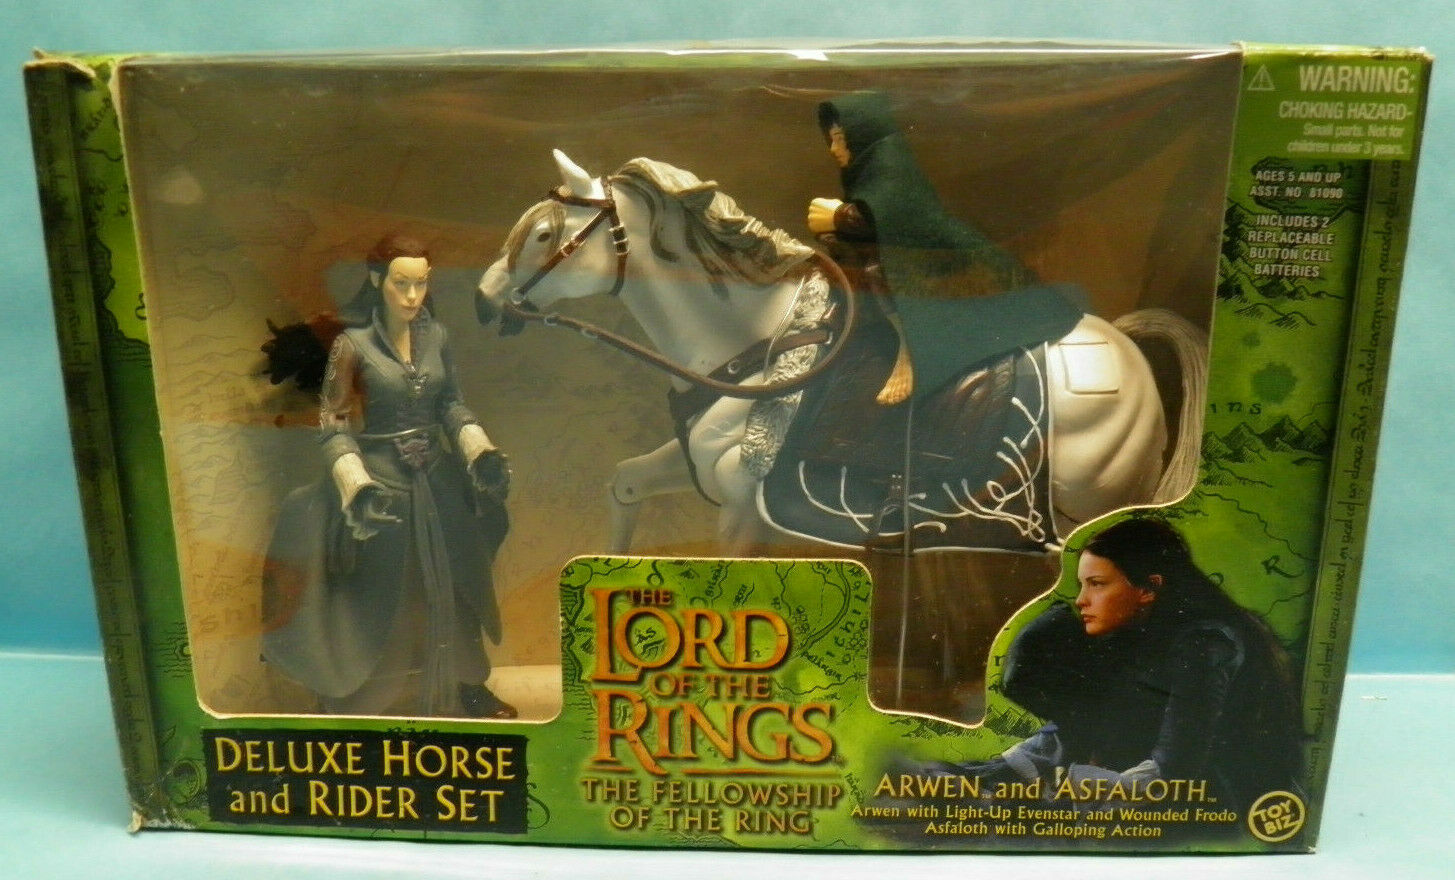 giocattoloBiz The Lord of the Rings Arwen & Asfaloth The Fellowship of the Ring Set